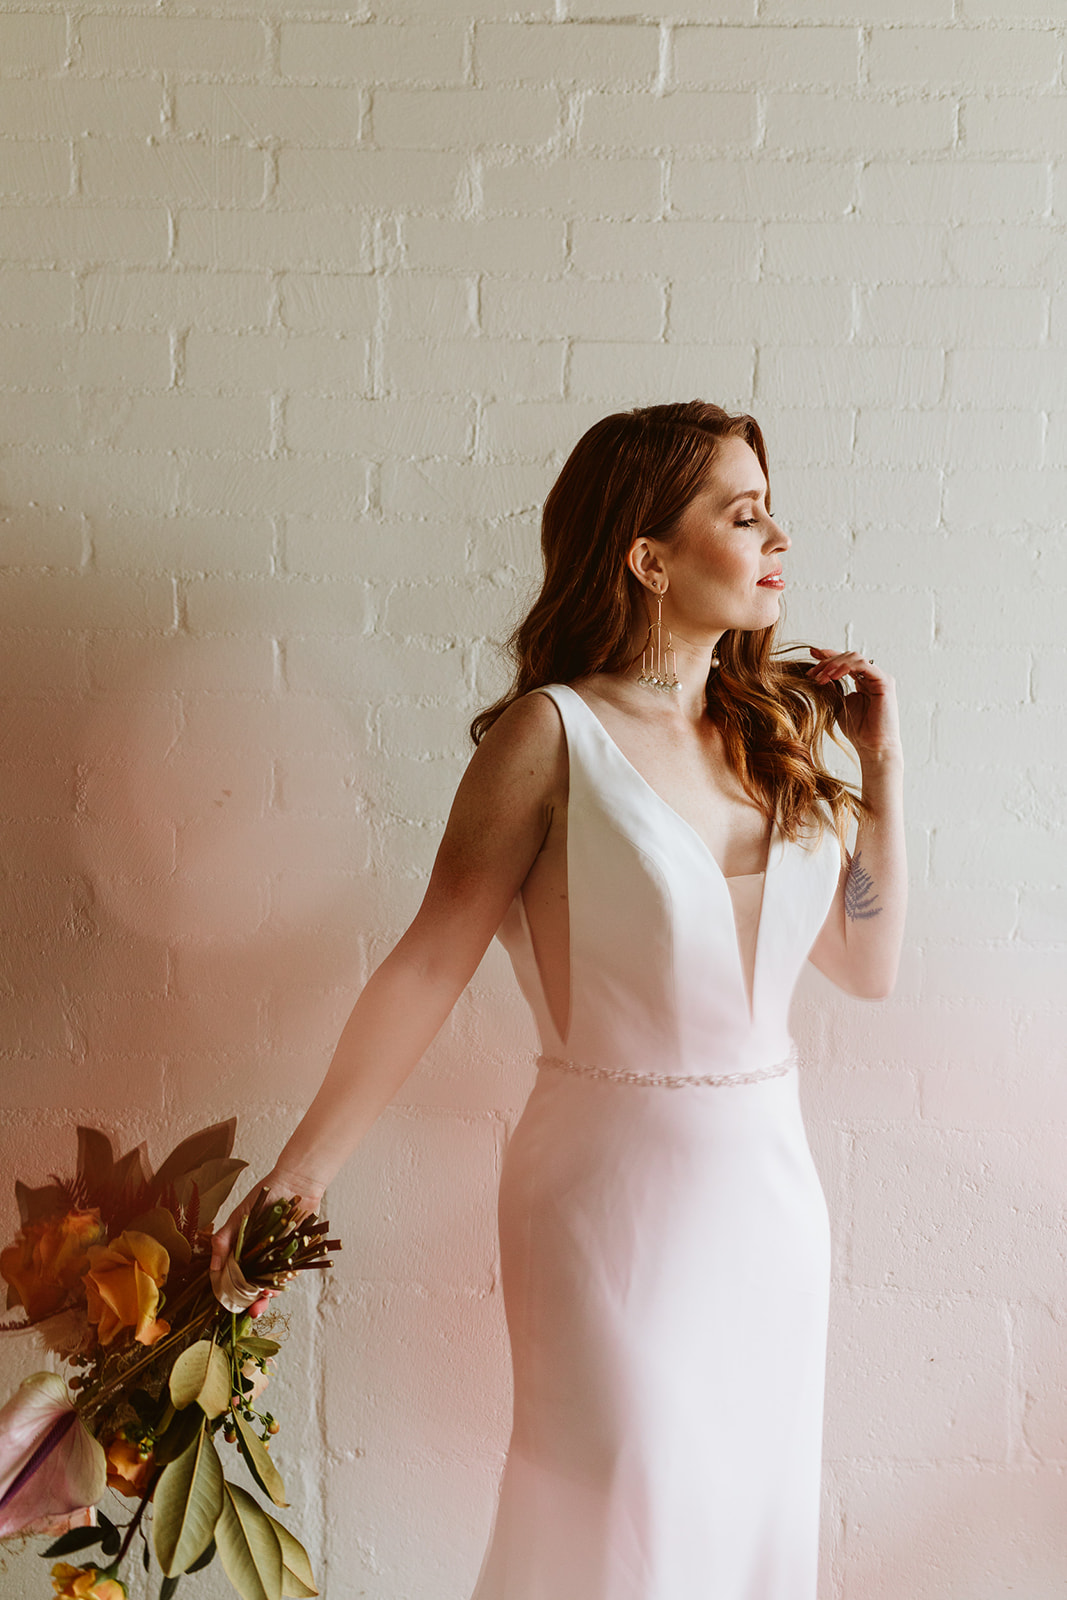 foreground photo. foreground photography. boho bridal. natural bride. elegant bride. relaxed elopement. loft elopement. whimsical wedding. moody photography. earthy photography. natural photography.